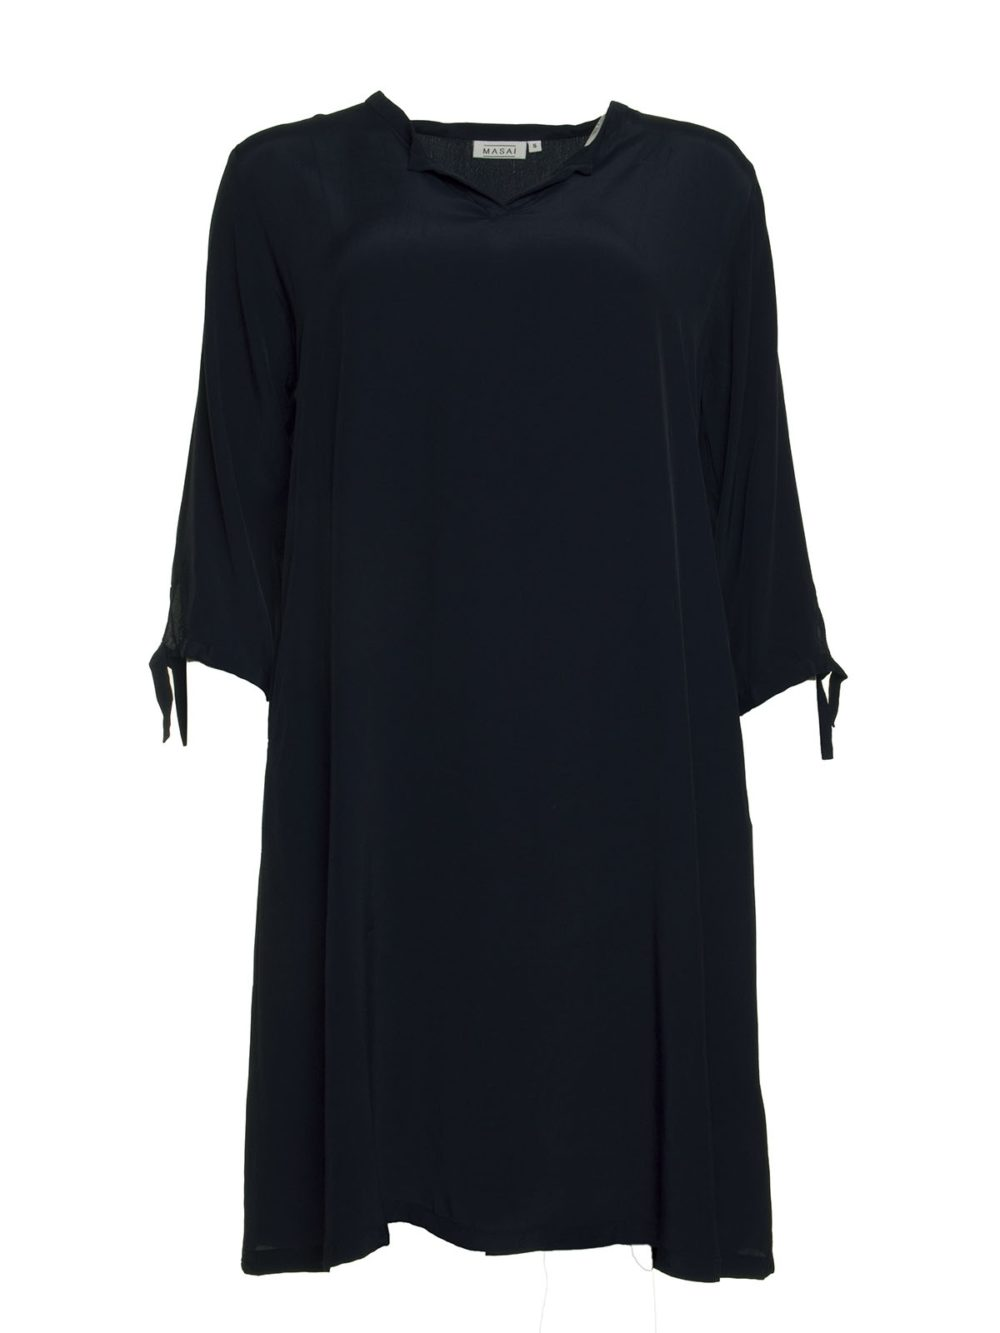 Nana Dress Masai Clothing Katie Kerr Women's Clothing